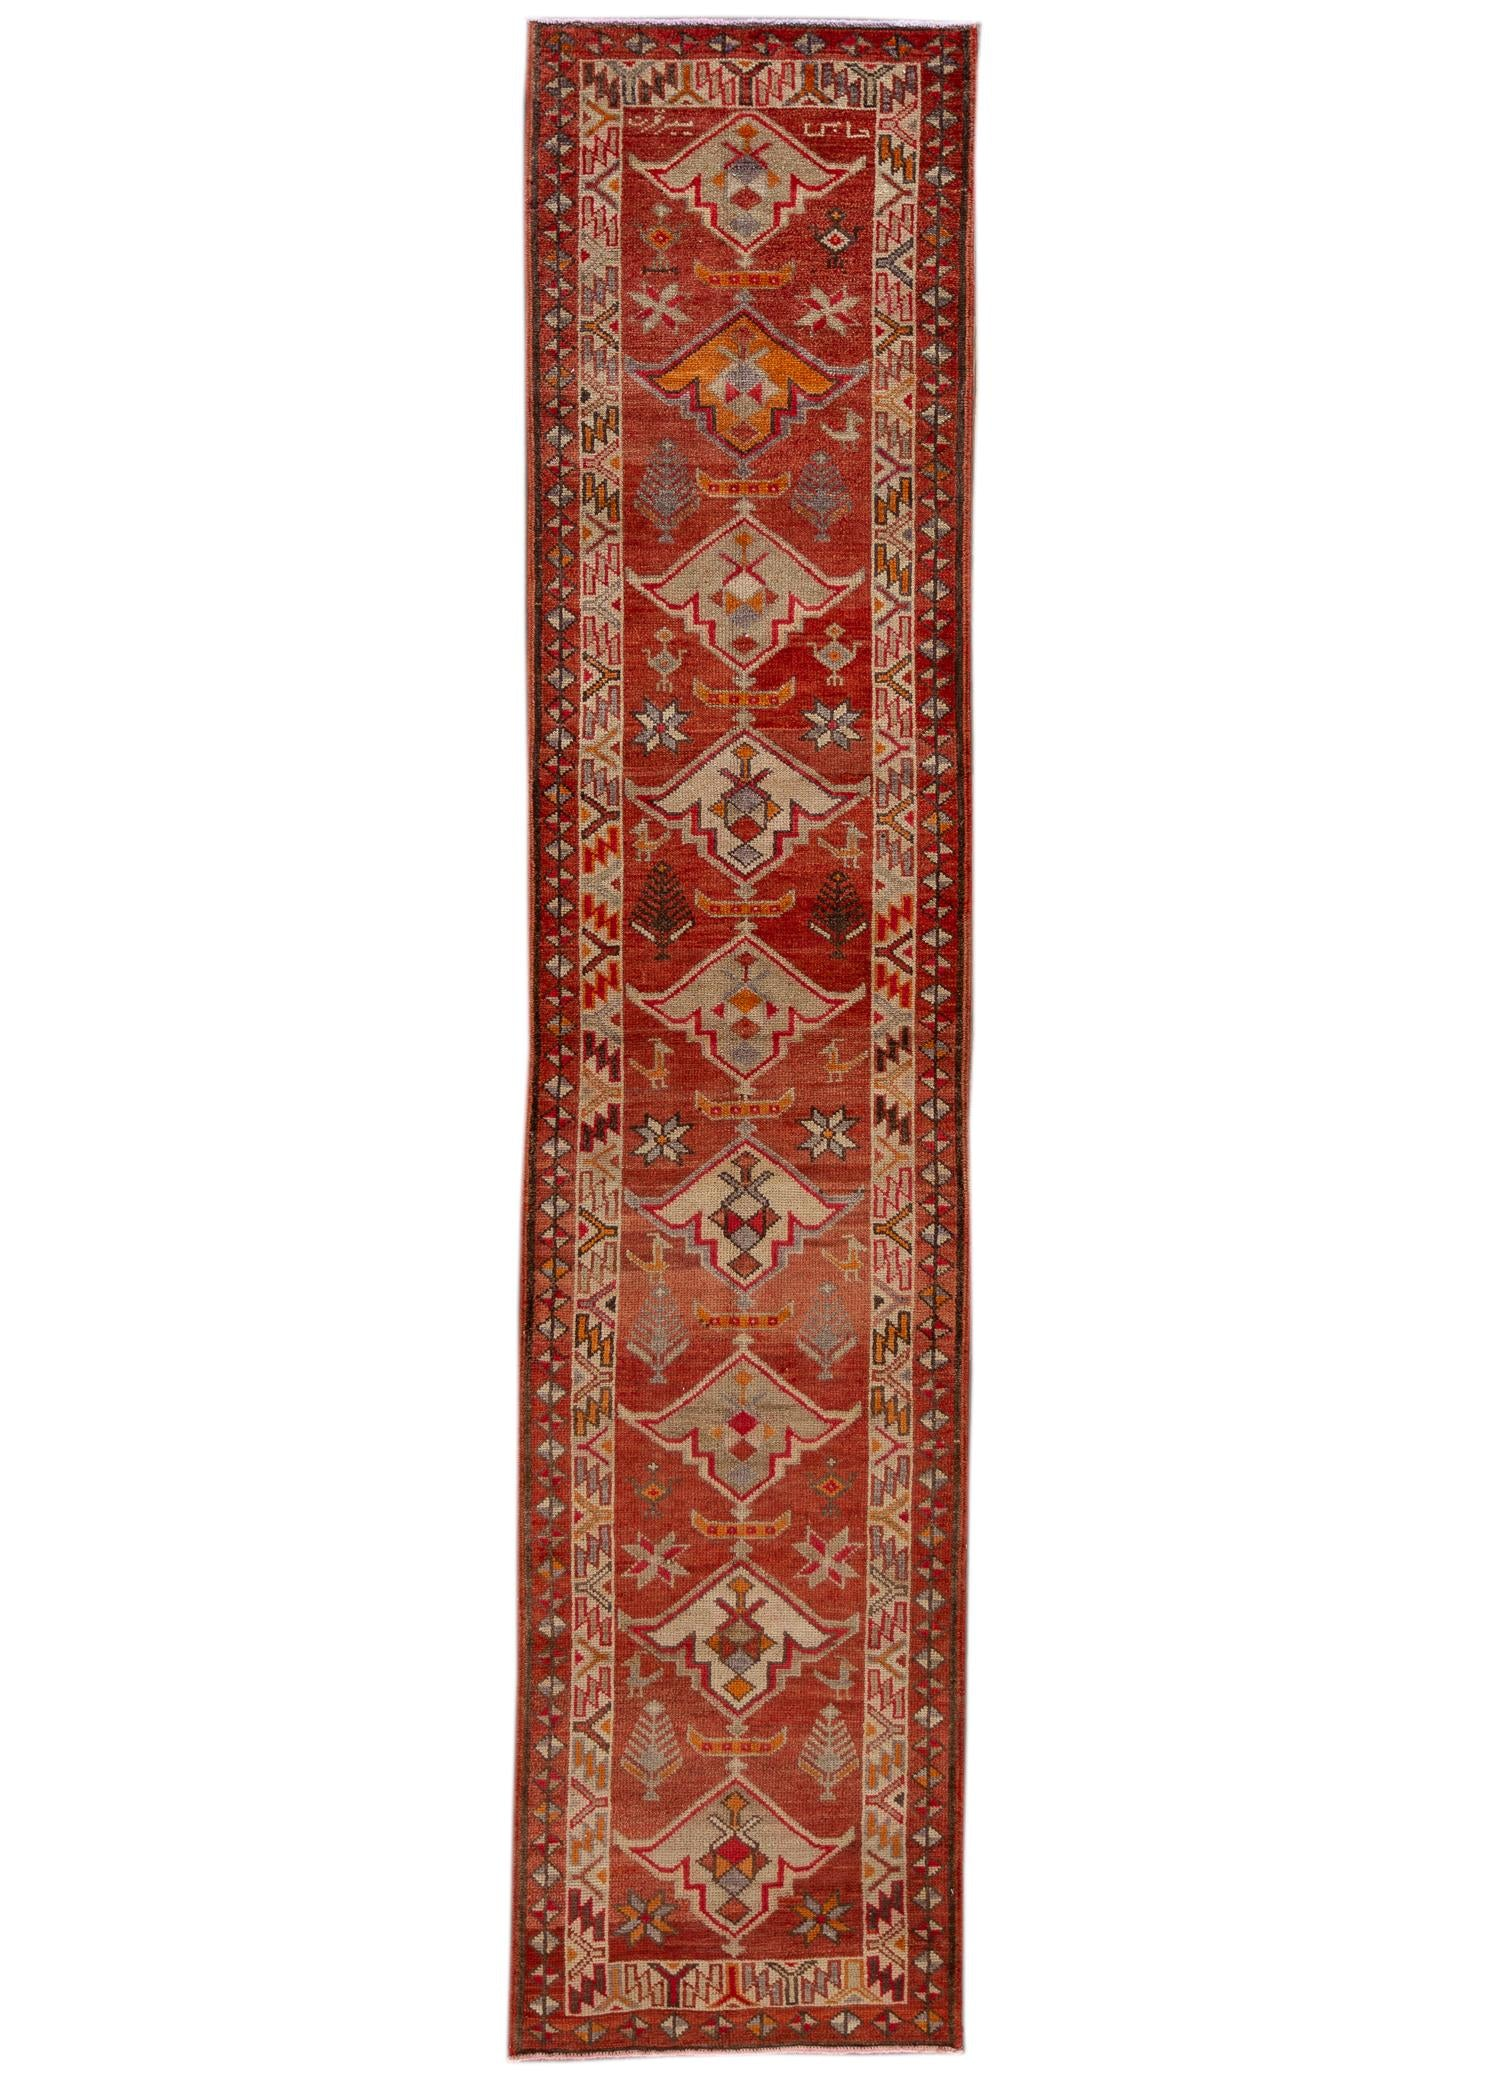 Early 20th Century  Anatolian Village Runner Rug 3' x 13'